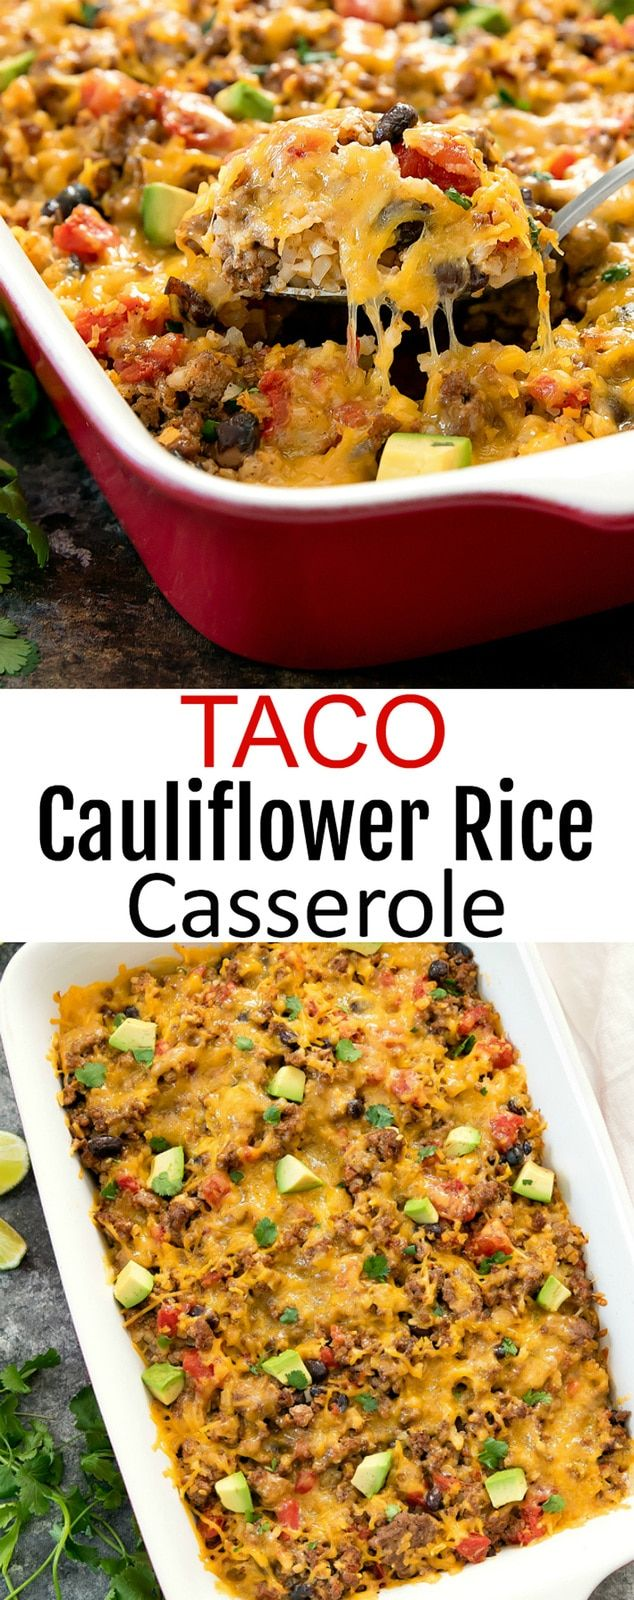 Photo of Taco Cauliflower Rice Casserole